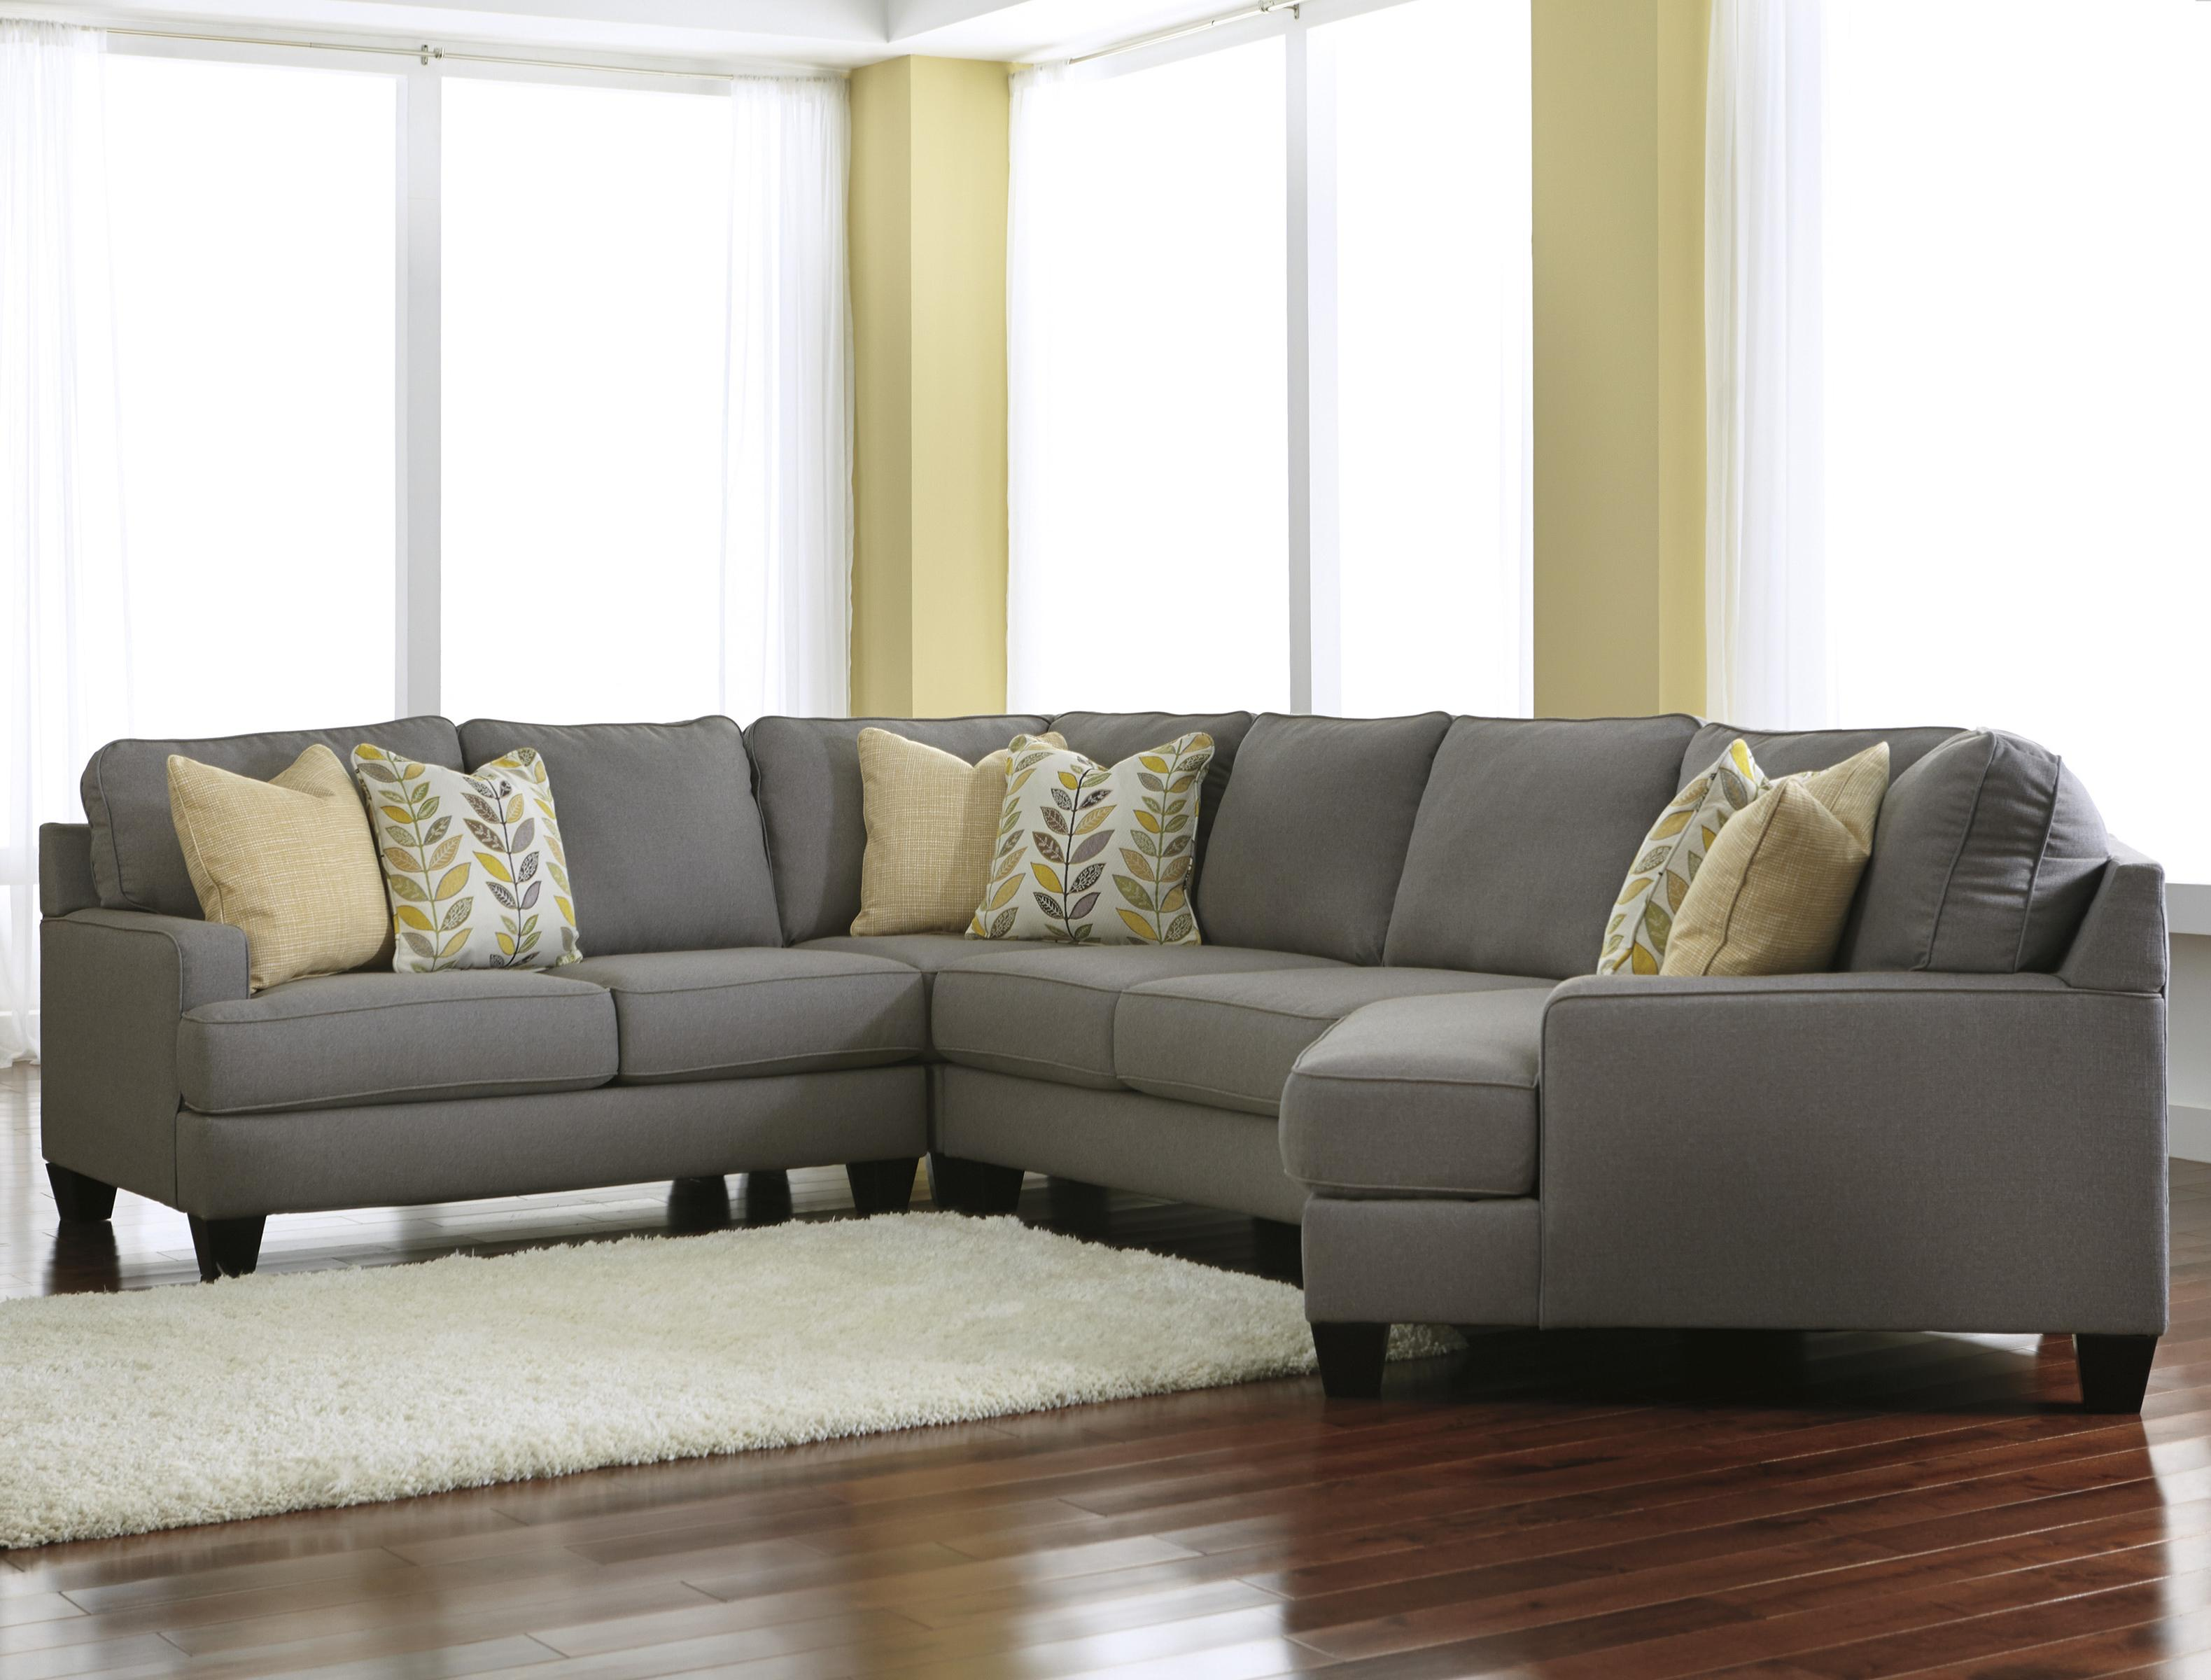 patina furniture piece products right patola park with sectional sofa cuddler item number ashley